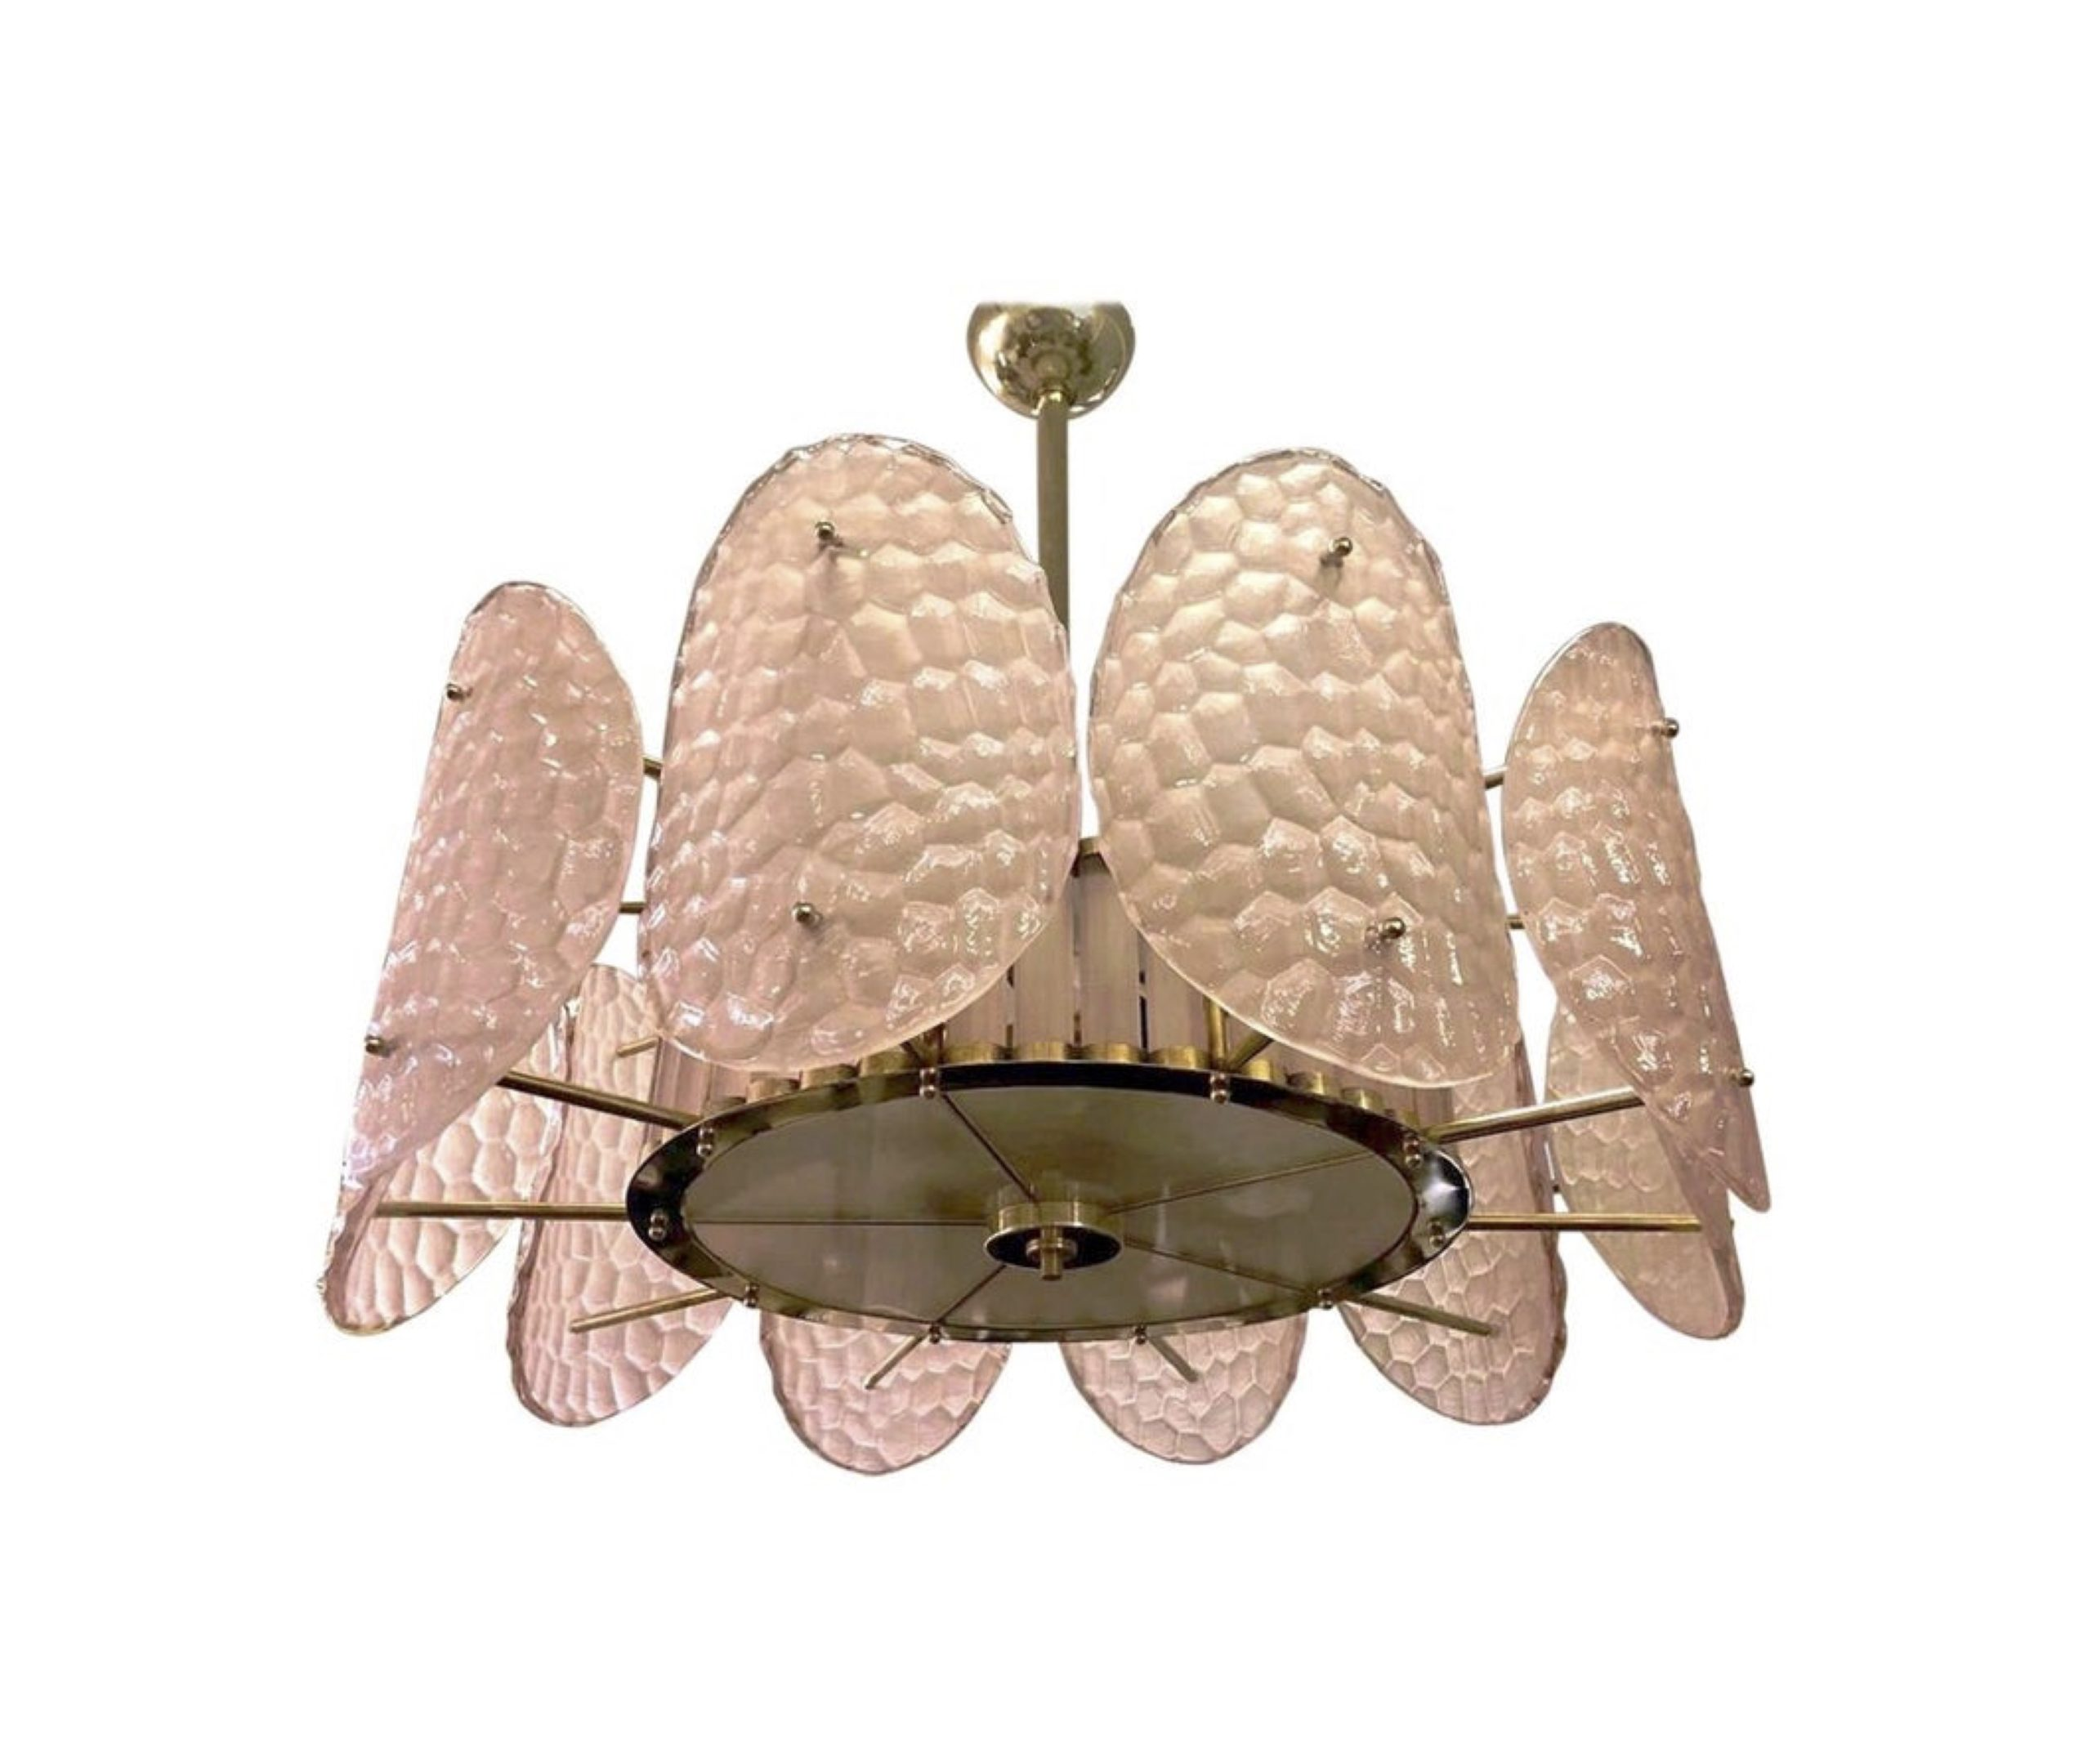 cosulich_interiors_and_antiques_products_new_york_design_bespoke_italian_crystal_rose_pink_murano_glass_brass_chandelier_flushmount-scaled-1